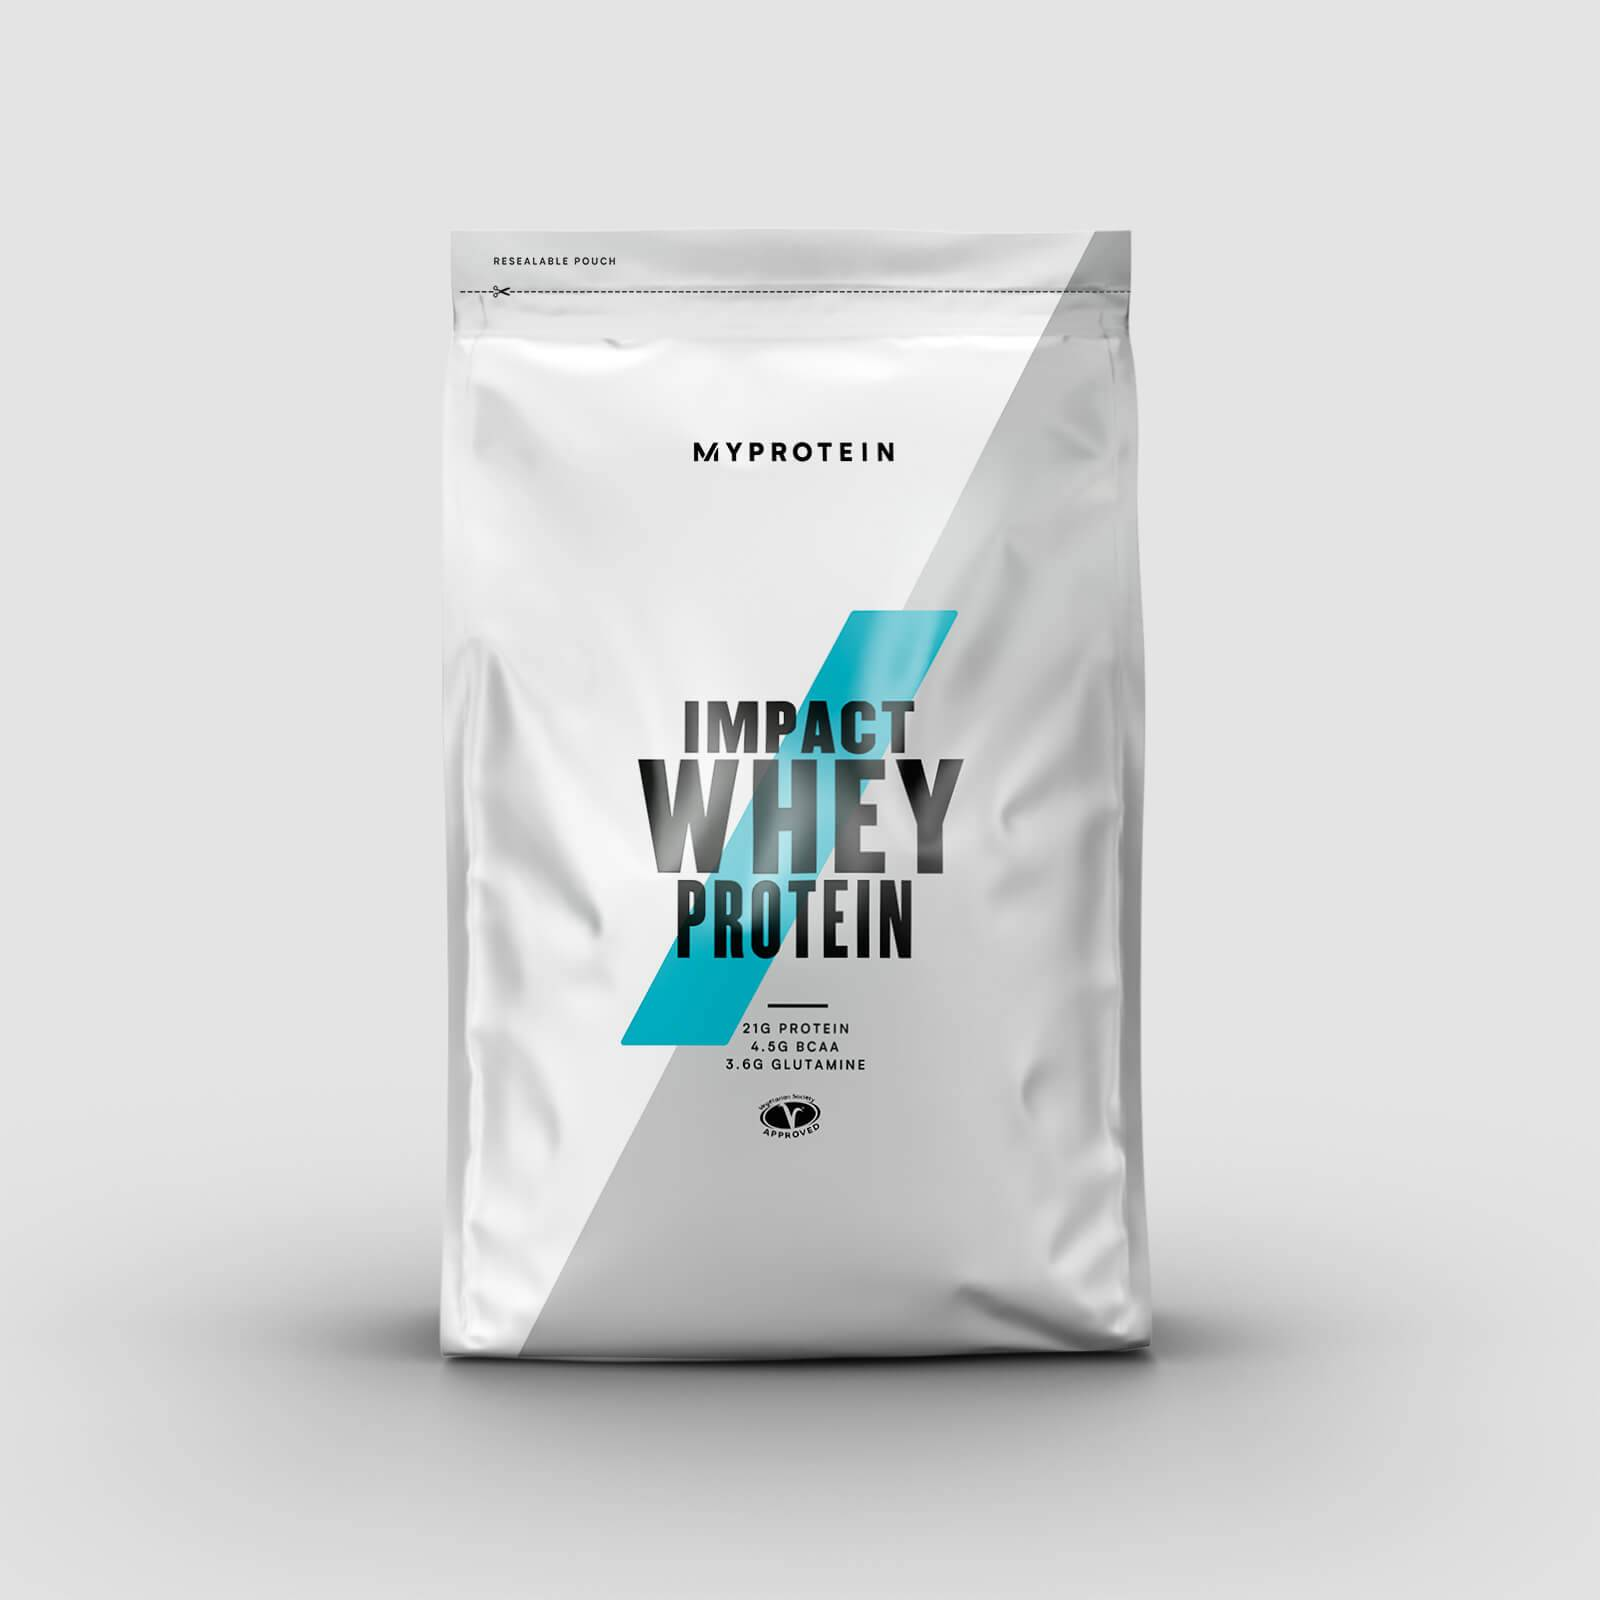 Myprotein Impact Whey Protein, 1kg - Summer Fruits